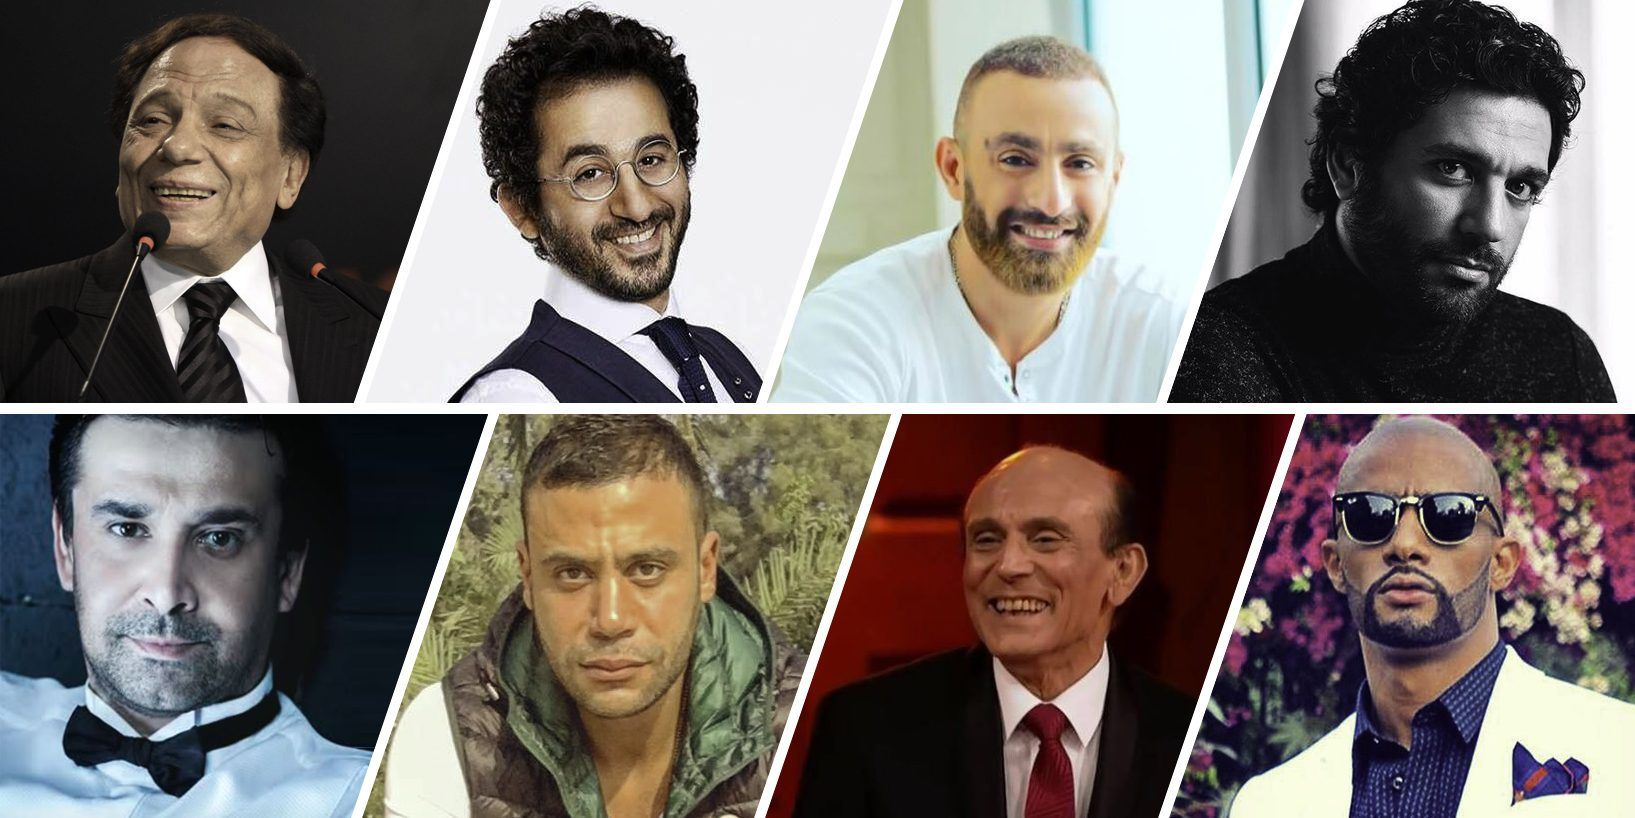 Middle Eastern Actors - The Top 10 Arab Male Actors | Middle